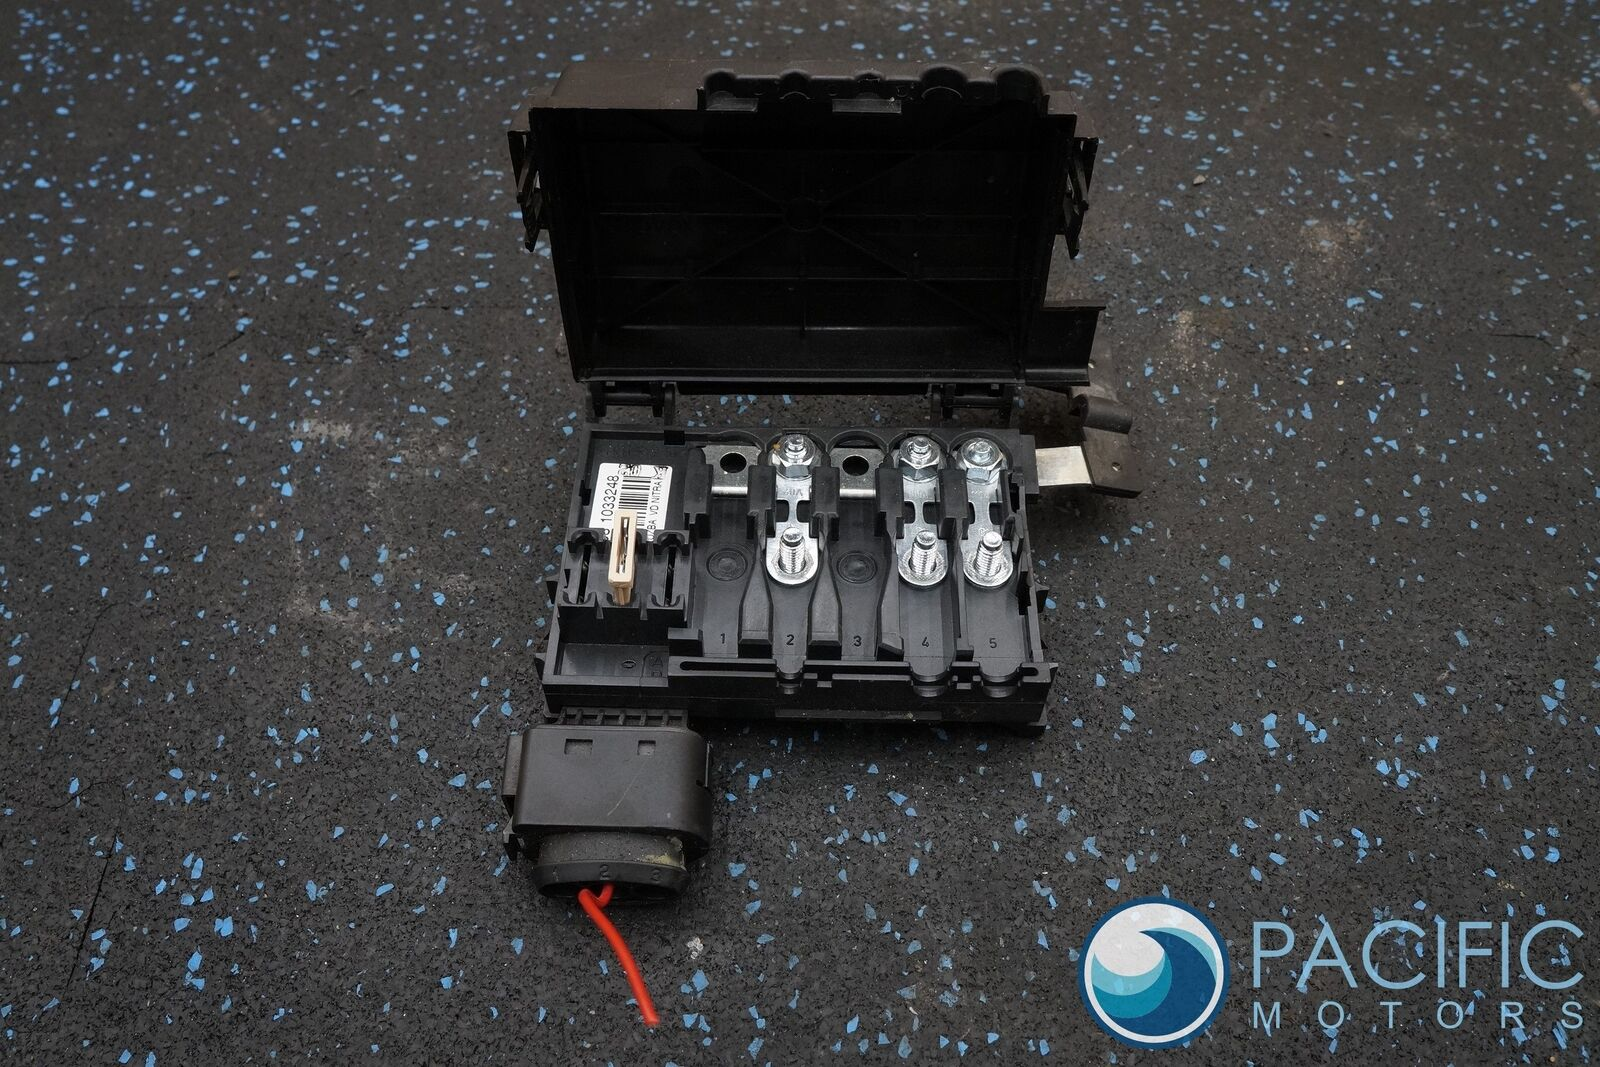 battery fuse box 3w0937550a oem bentley continental gt 2007 rh pacificmotors com bentley continental fuse box bentley continental fuse box diagram